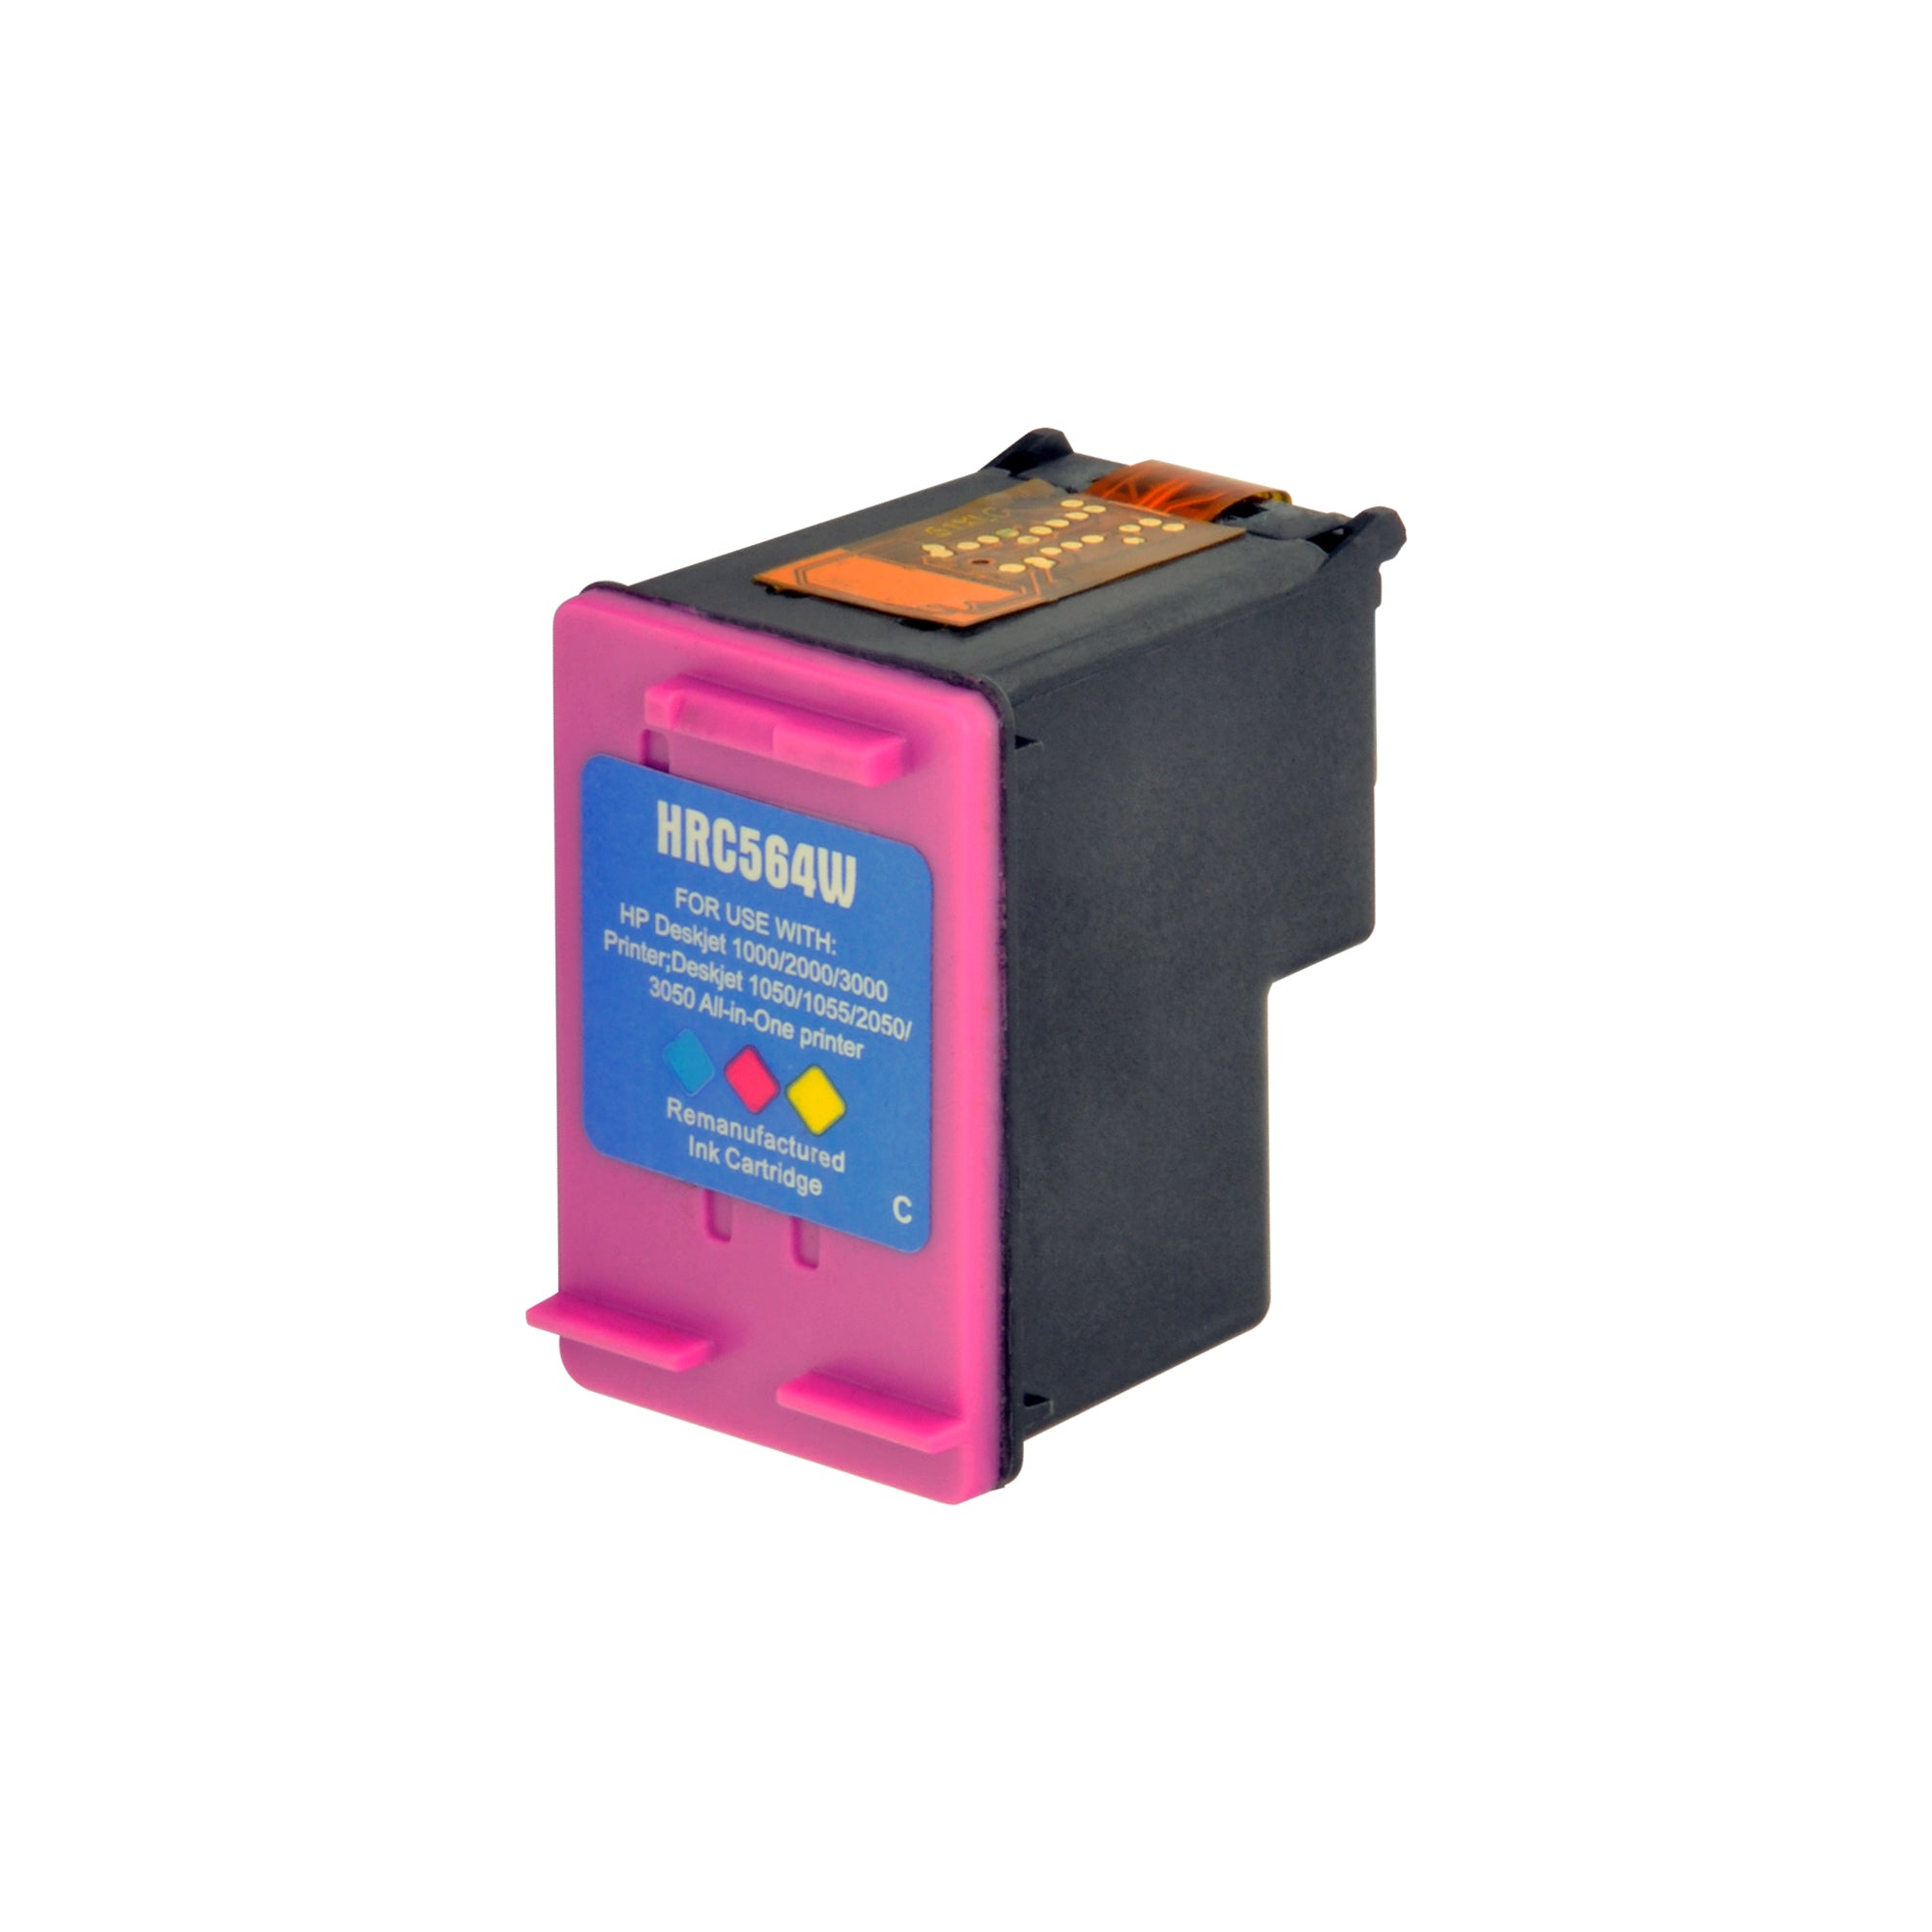 Arthur Imaging Remanufactured Ink Cartridge Replacement for HP 61XL (1 Black, 1 Tri-Color, 2-Pack)